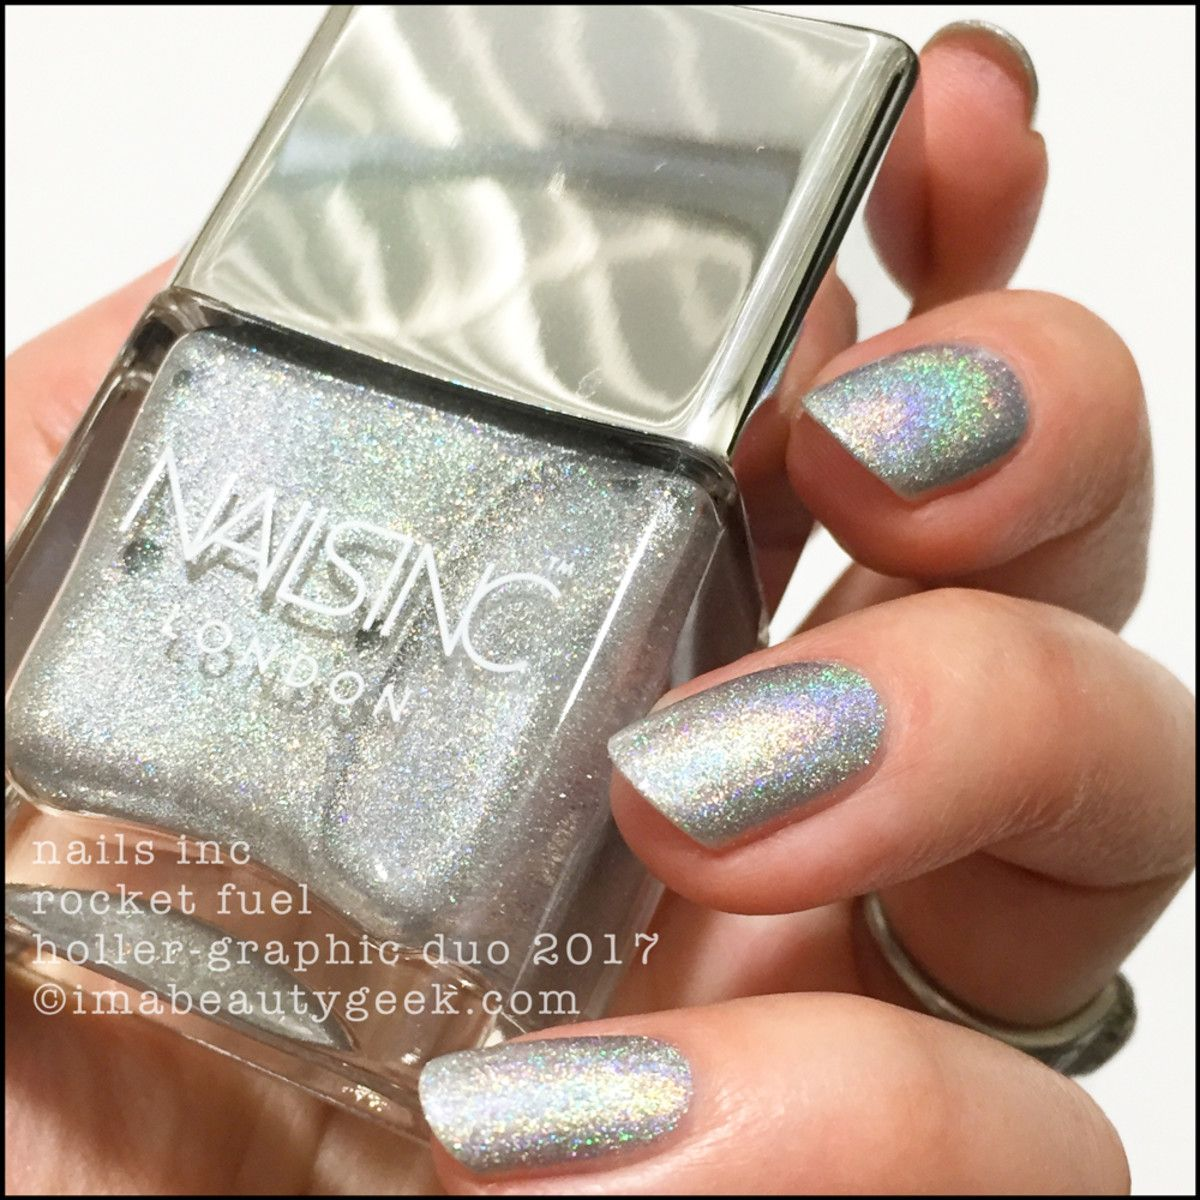 Nails inc gel nail colors and gel nail polish on pinterest - It S The Nails Inc Holler Graphic Duo Ghetto Galactic Rocket Fuel Am I Glad I Made The Lovely Sephora Associate Disappear Into The Stockroom For Almost